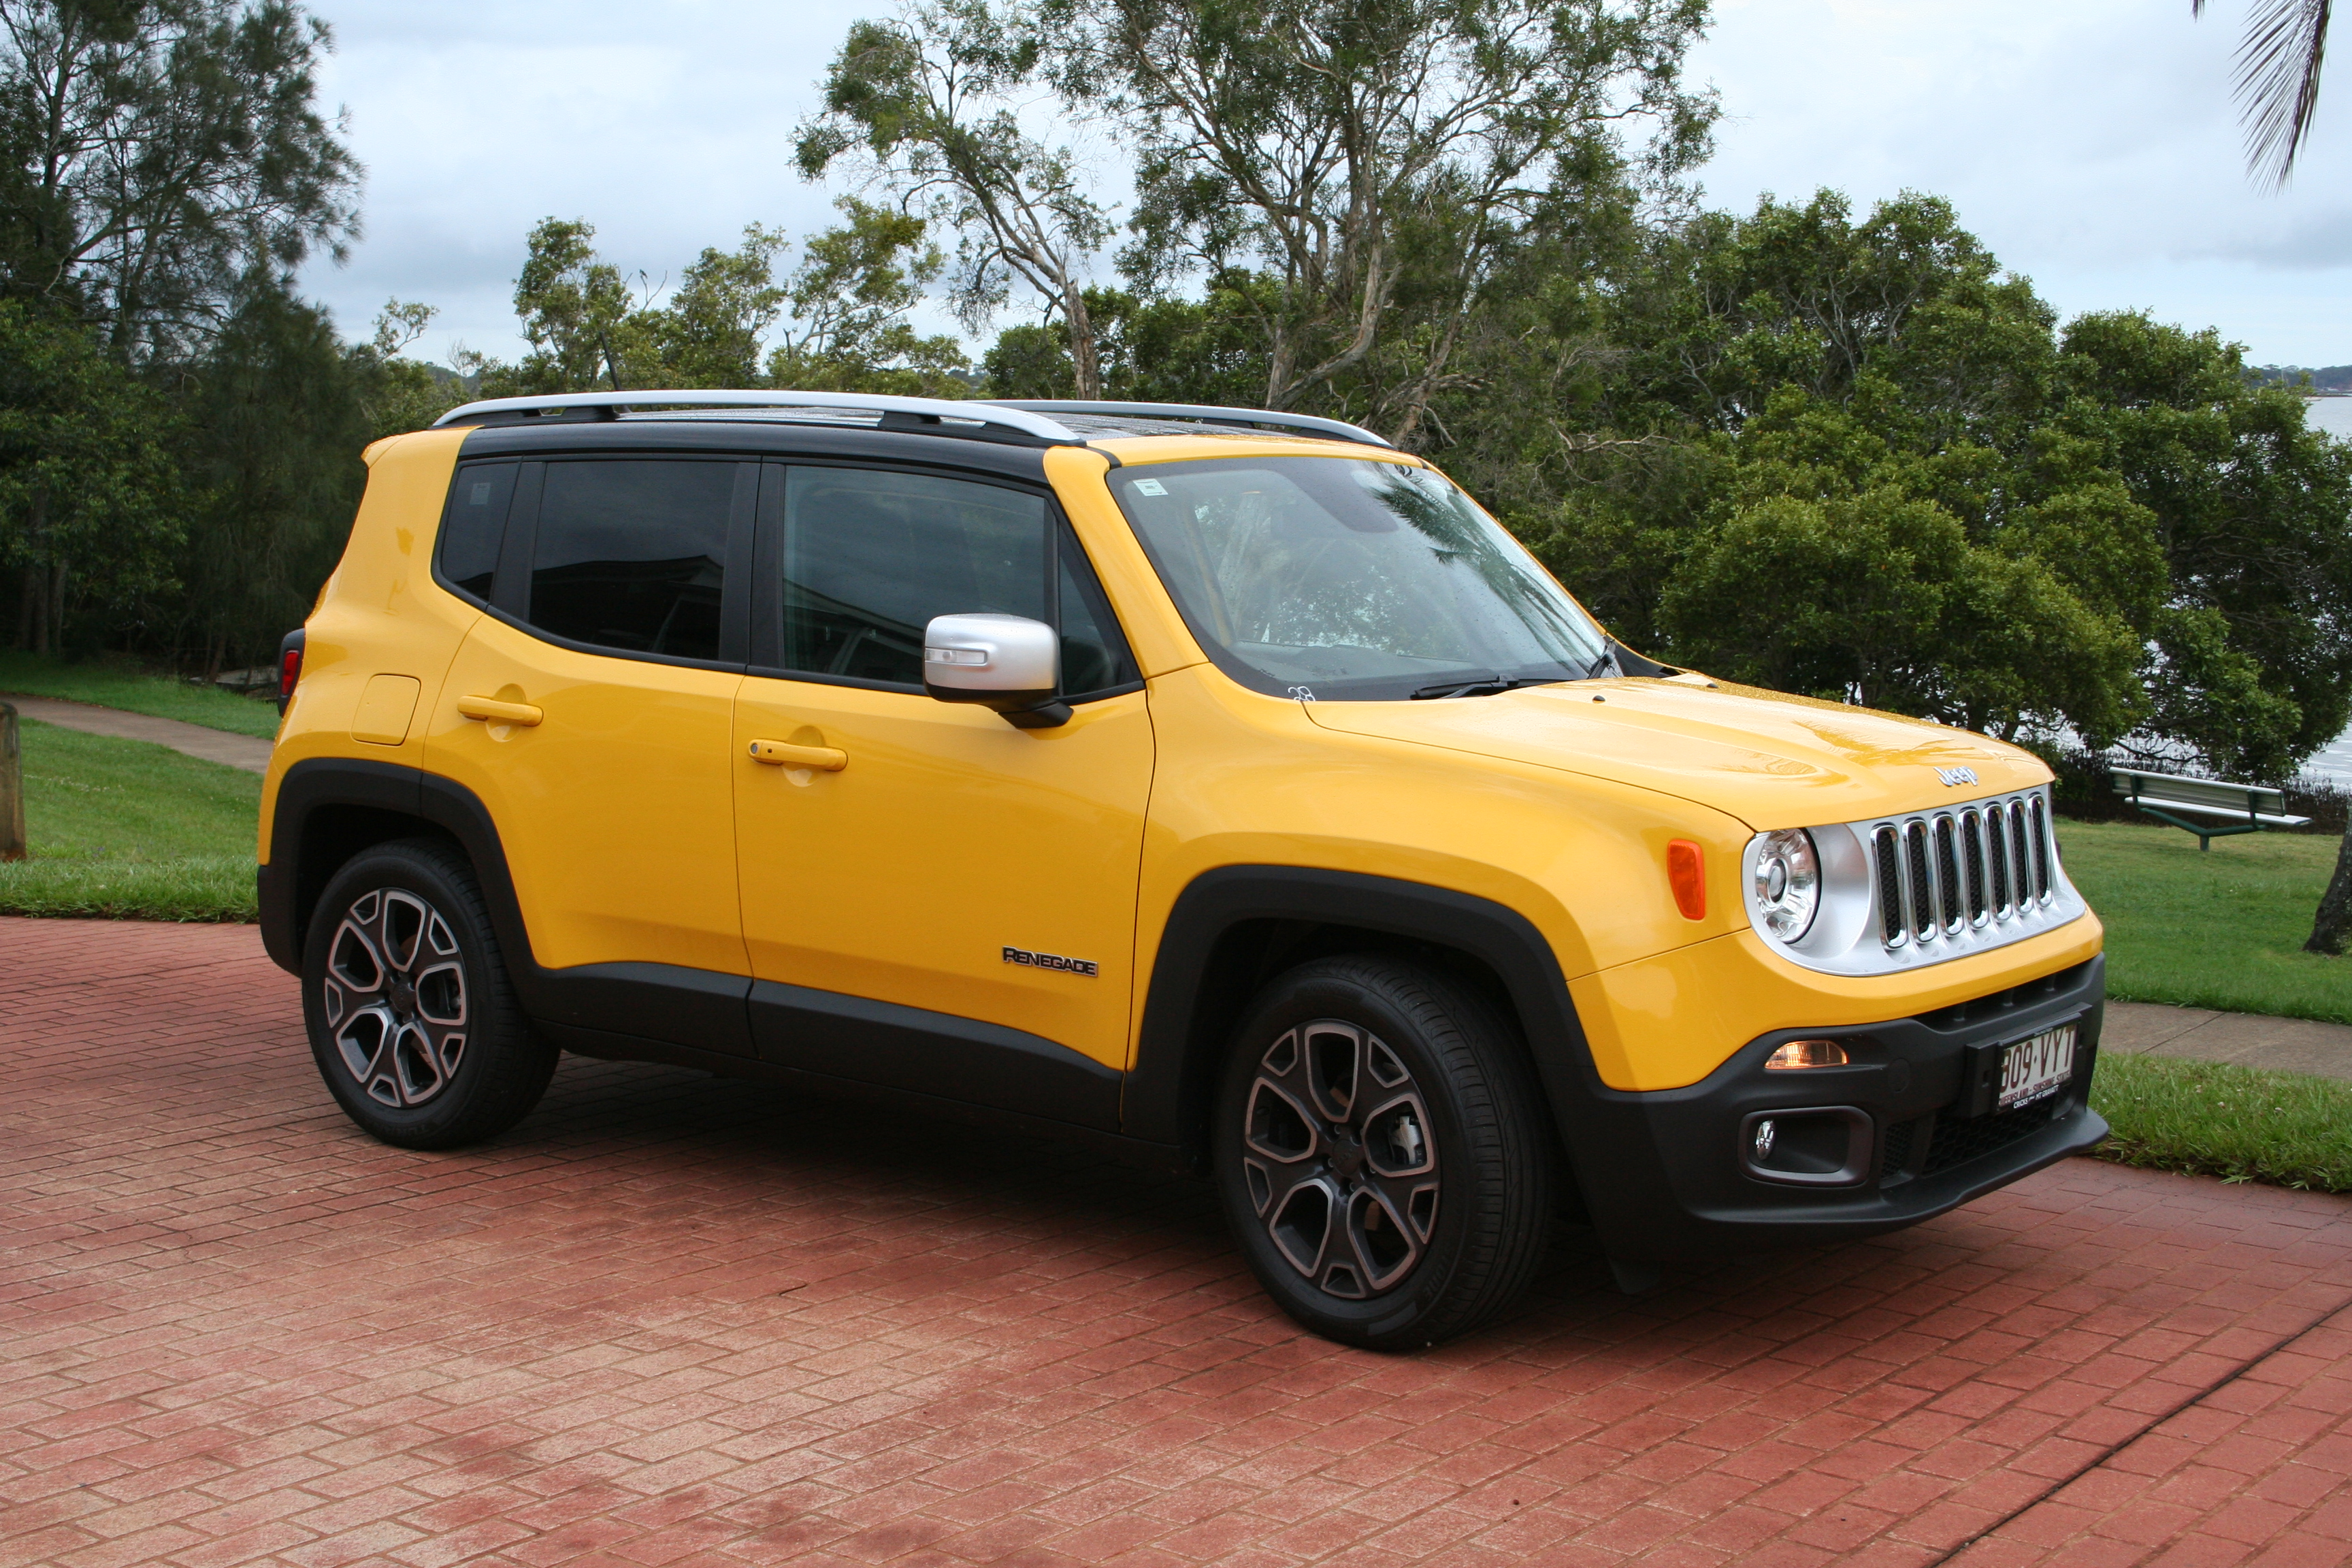 Unique styling that clearly differentiates the Renegade from its main rivals was a smart choice by Jeep and the car really stands out on the road, especially in Solar Yellow.